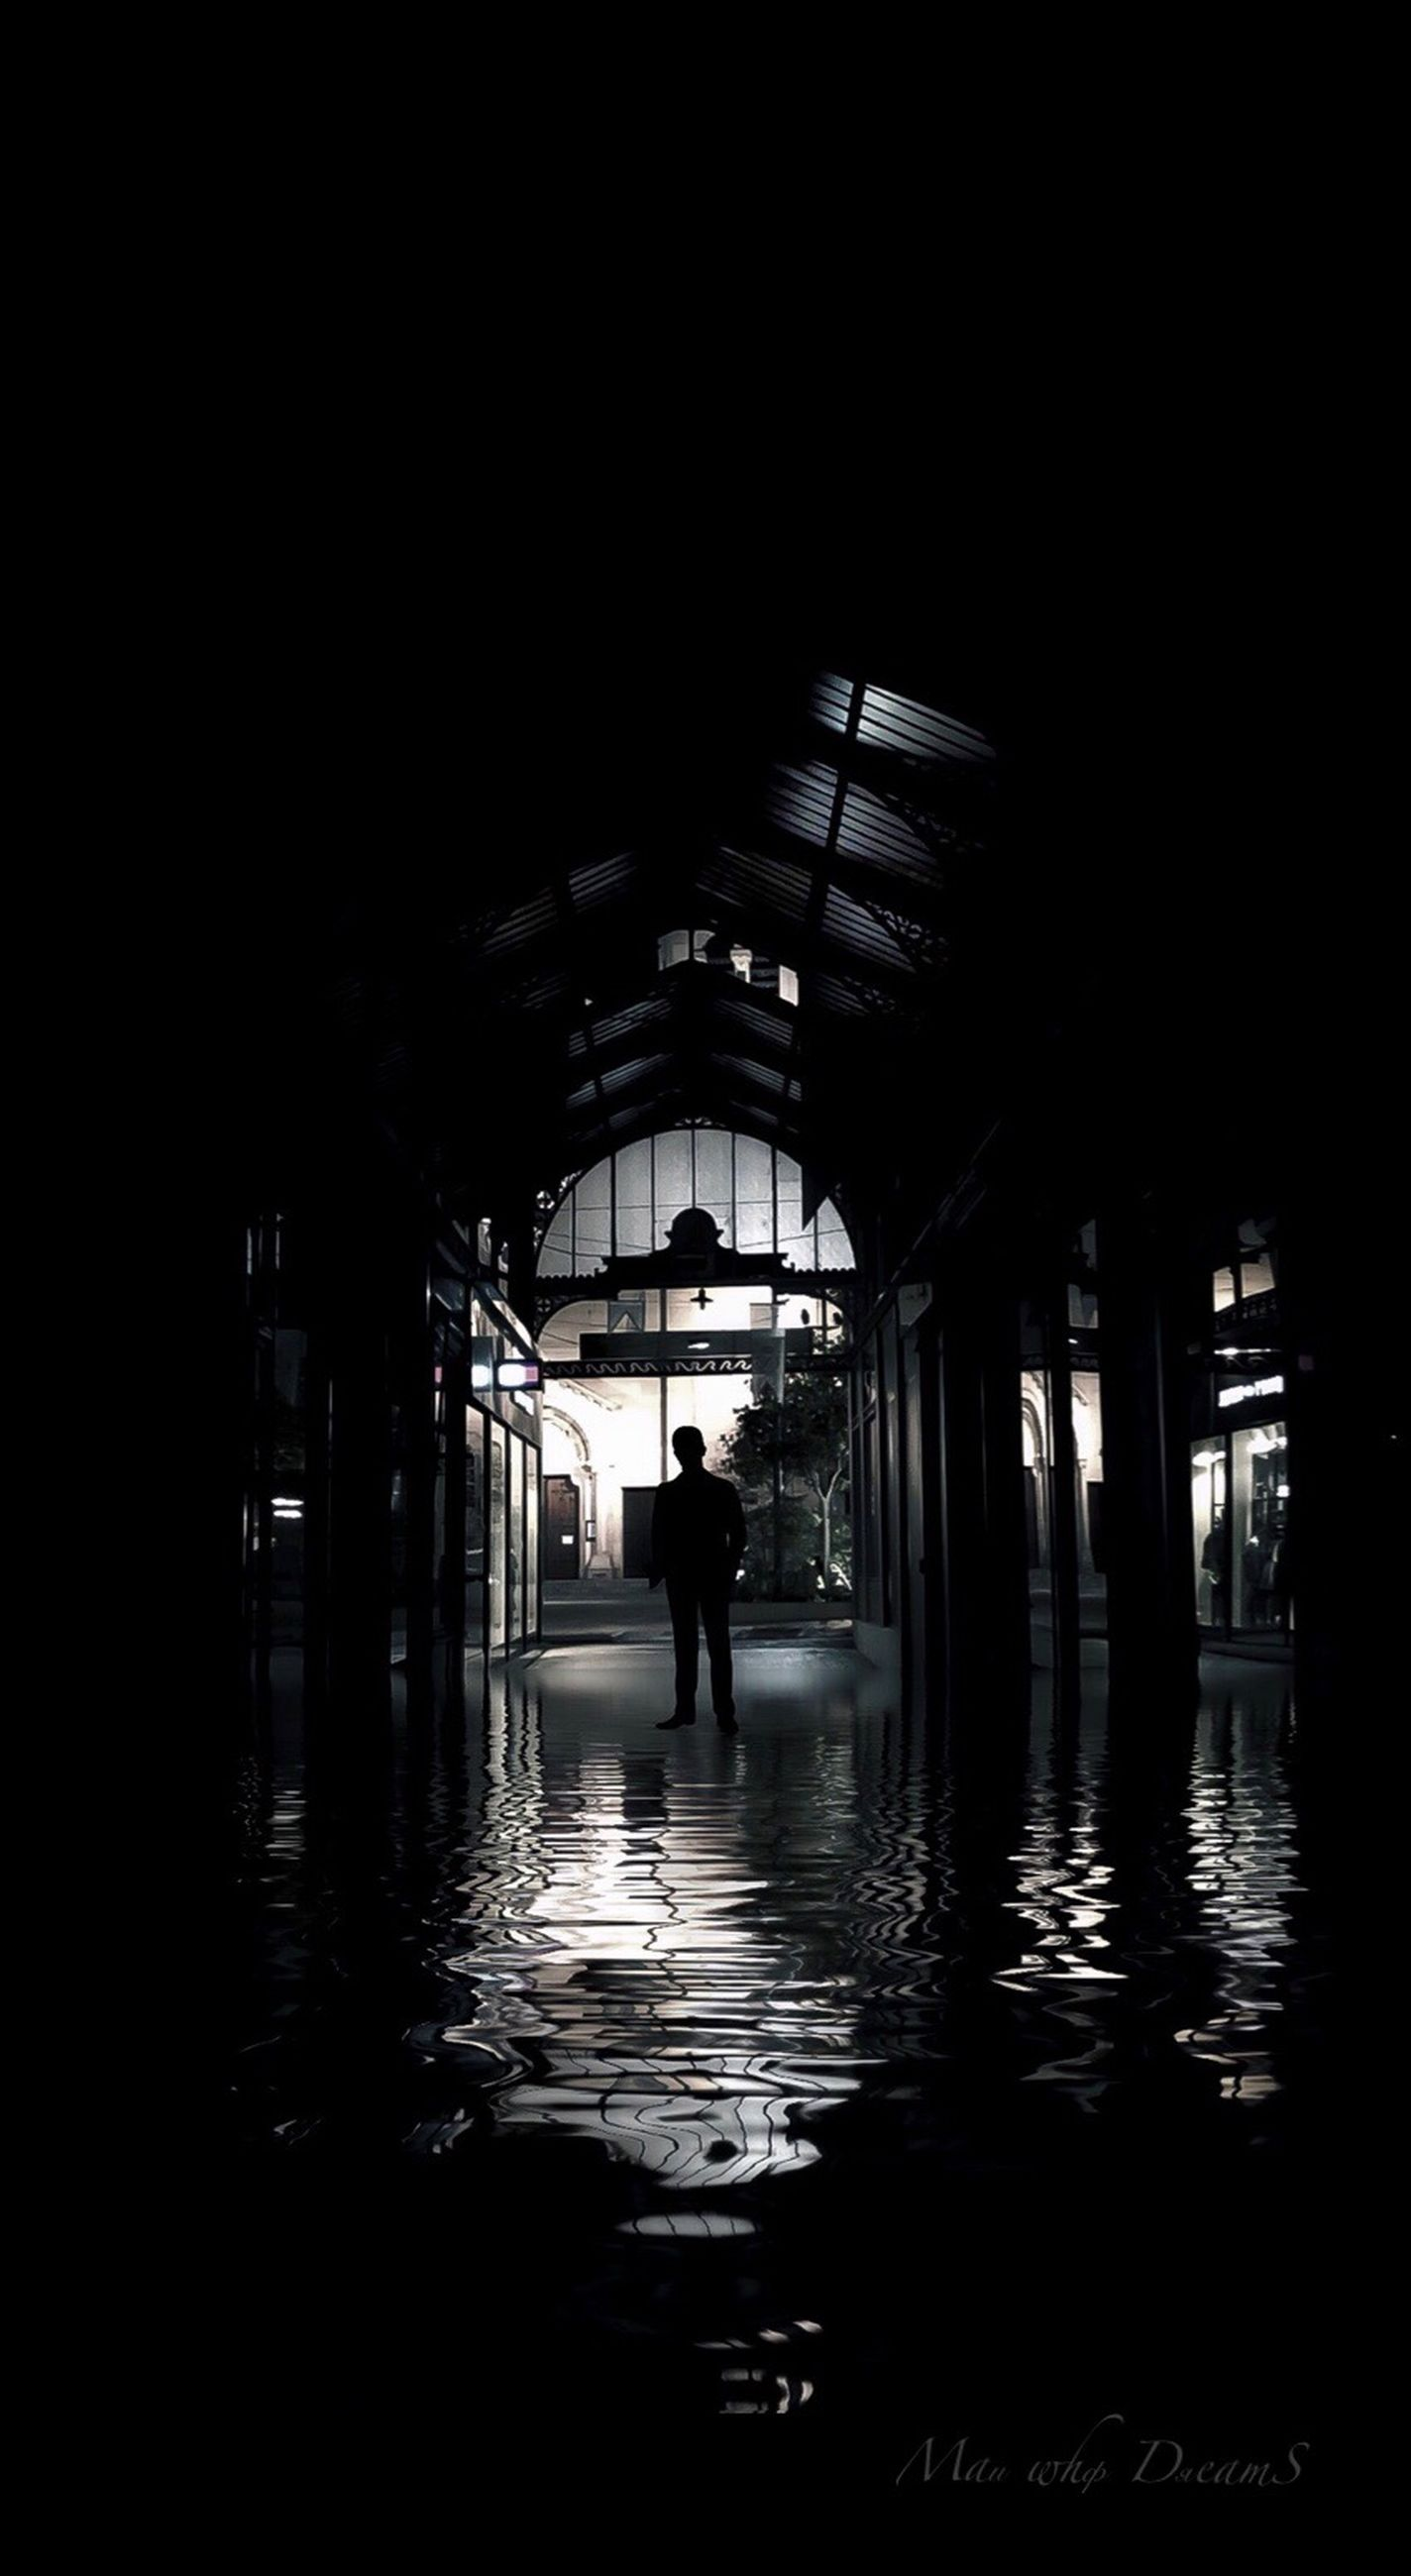 architecture, built structure, silhouette, real people, water, indoors, reflection, one person, building, standing, day, unrecognizable person, lifestyles, full length, copy space, walking, dark, architectural column, ceiling